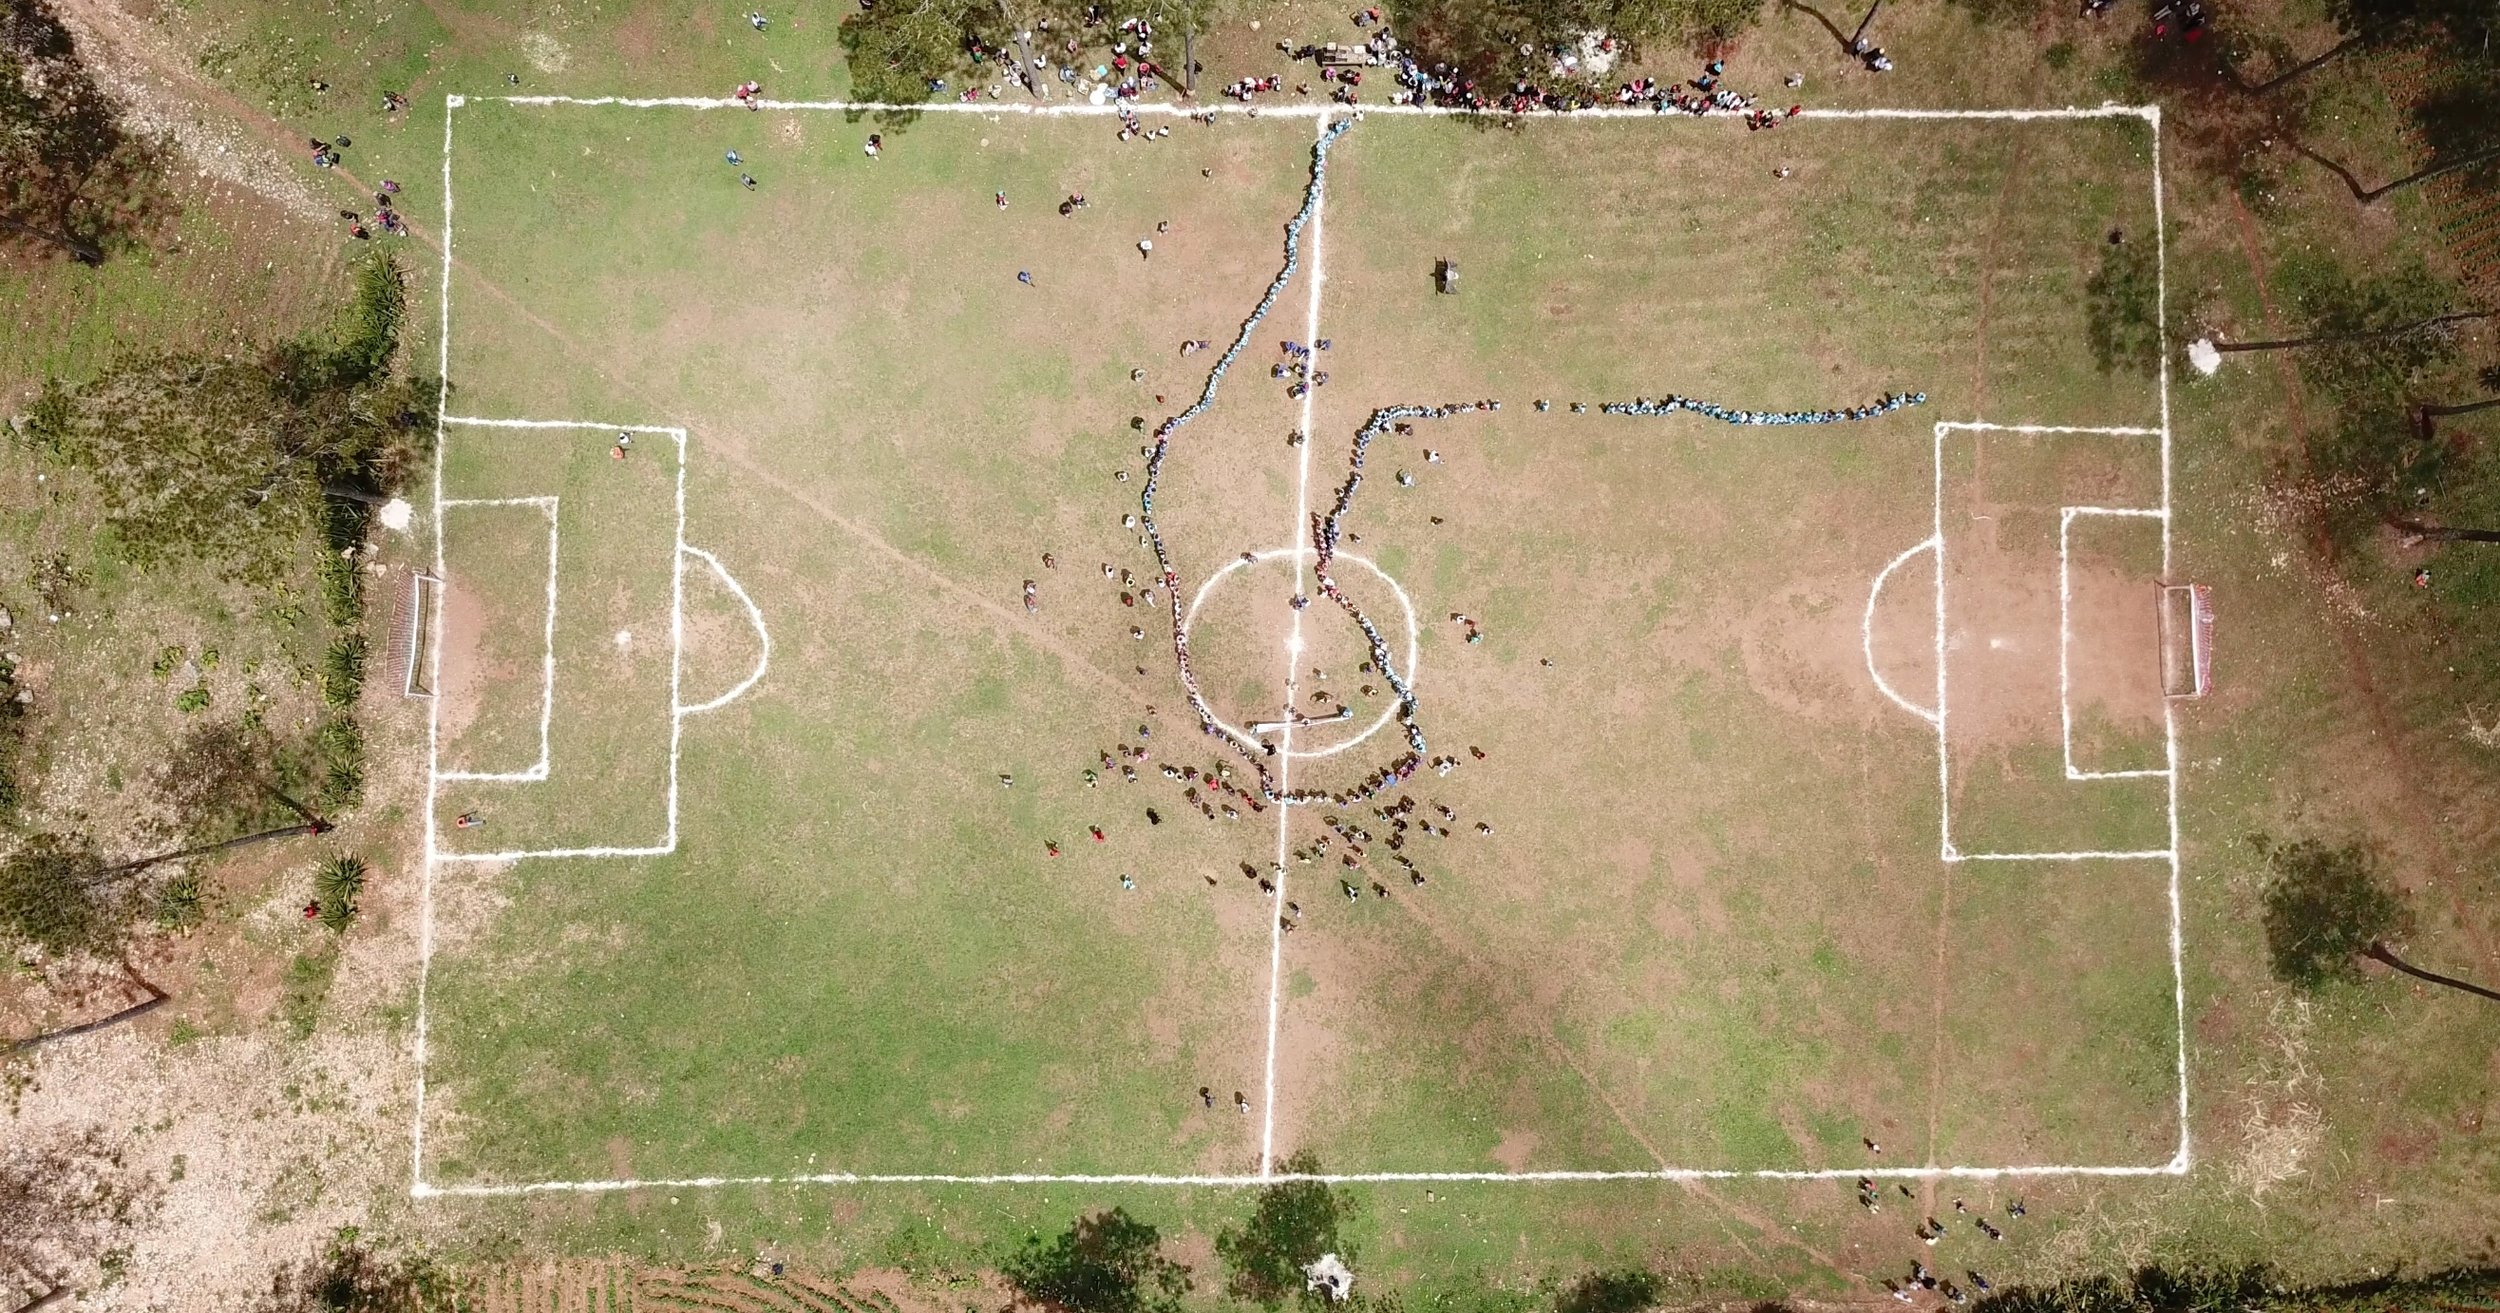 soccer field from satellite view